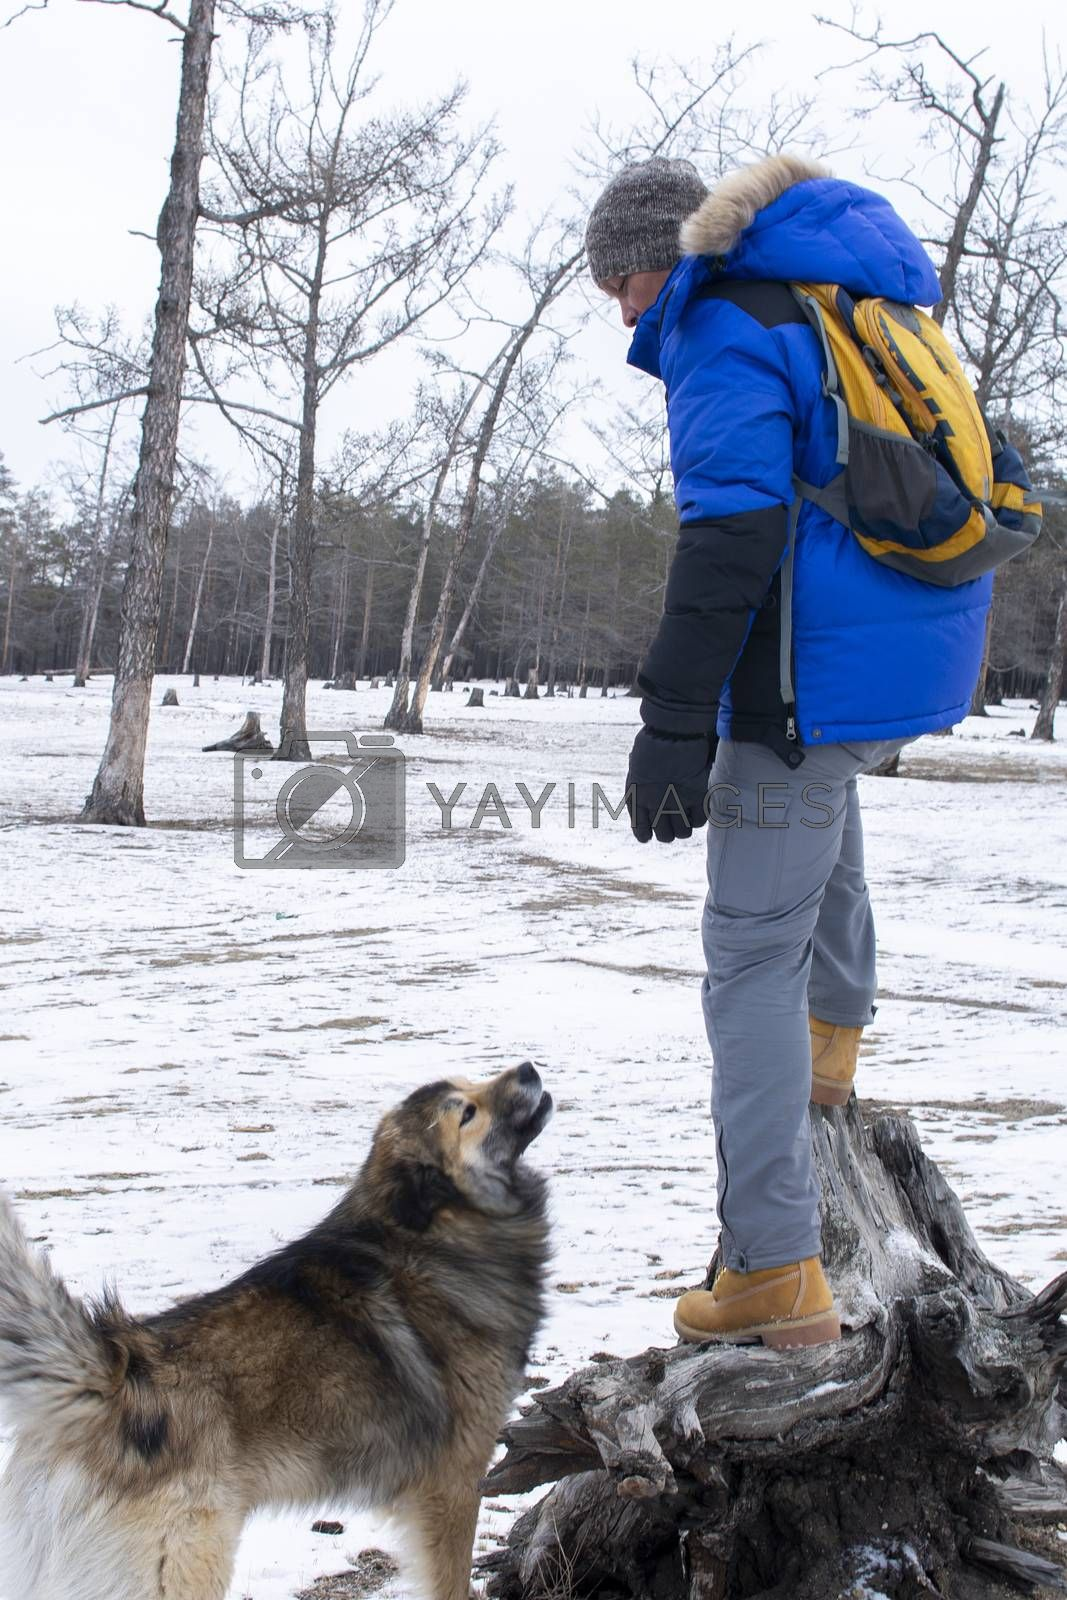 Man playing with dog in forest and snow on ground